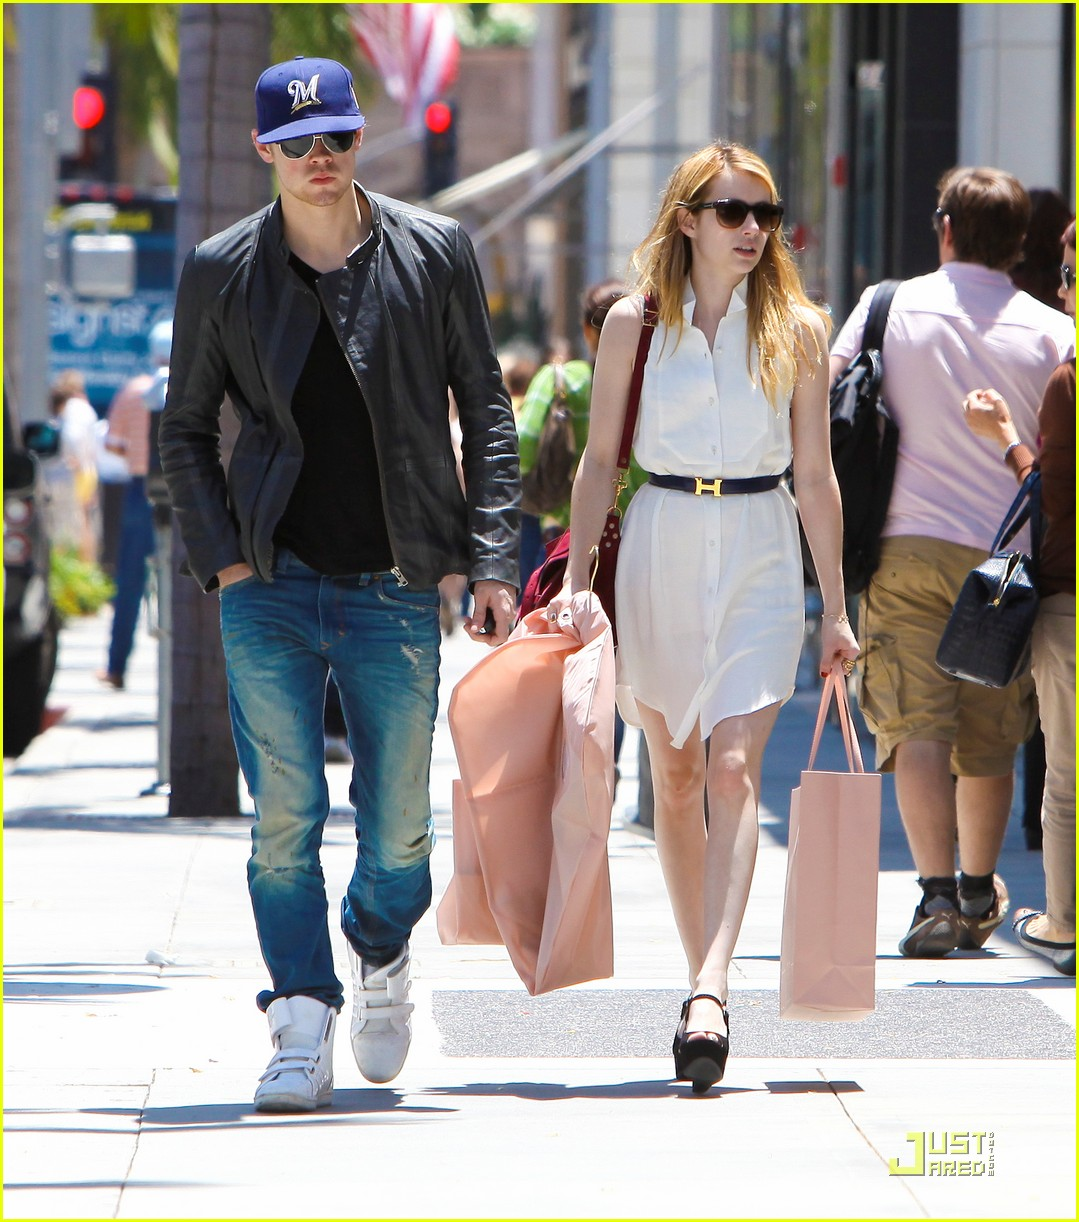 chord overstreet dating Xem video emma watson's fans are convinced she is dating former glee star chord overstreet fans have been keeping notes of when and where emma and chord have been spotted together.